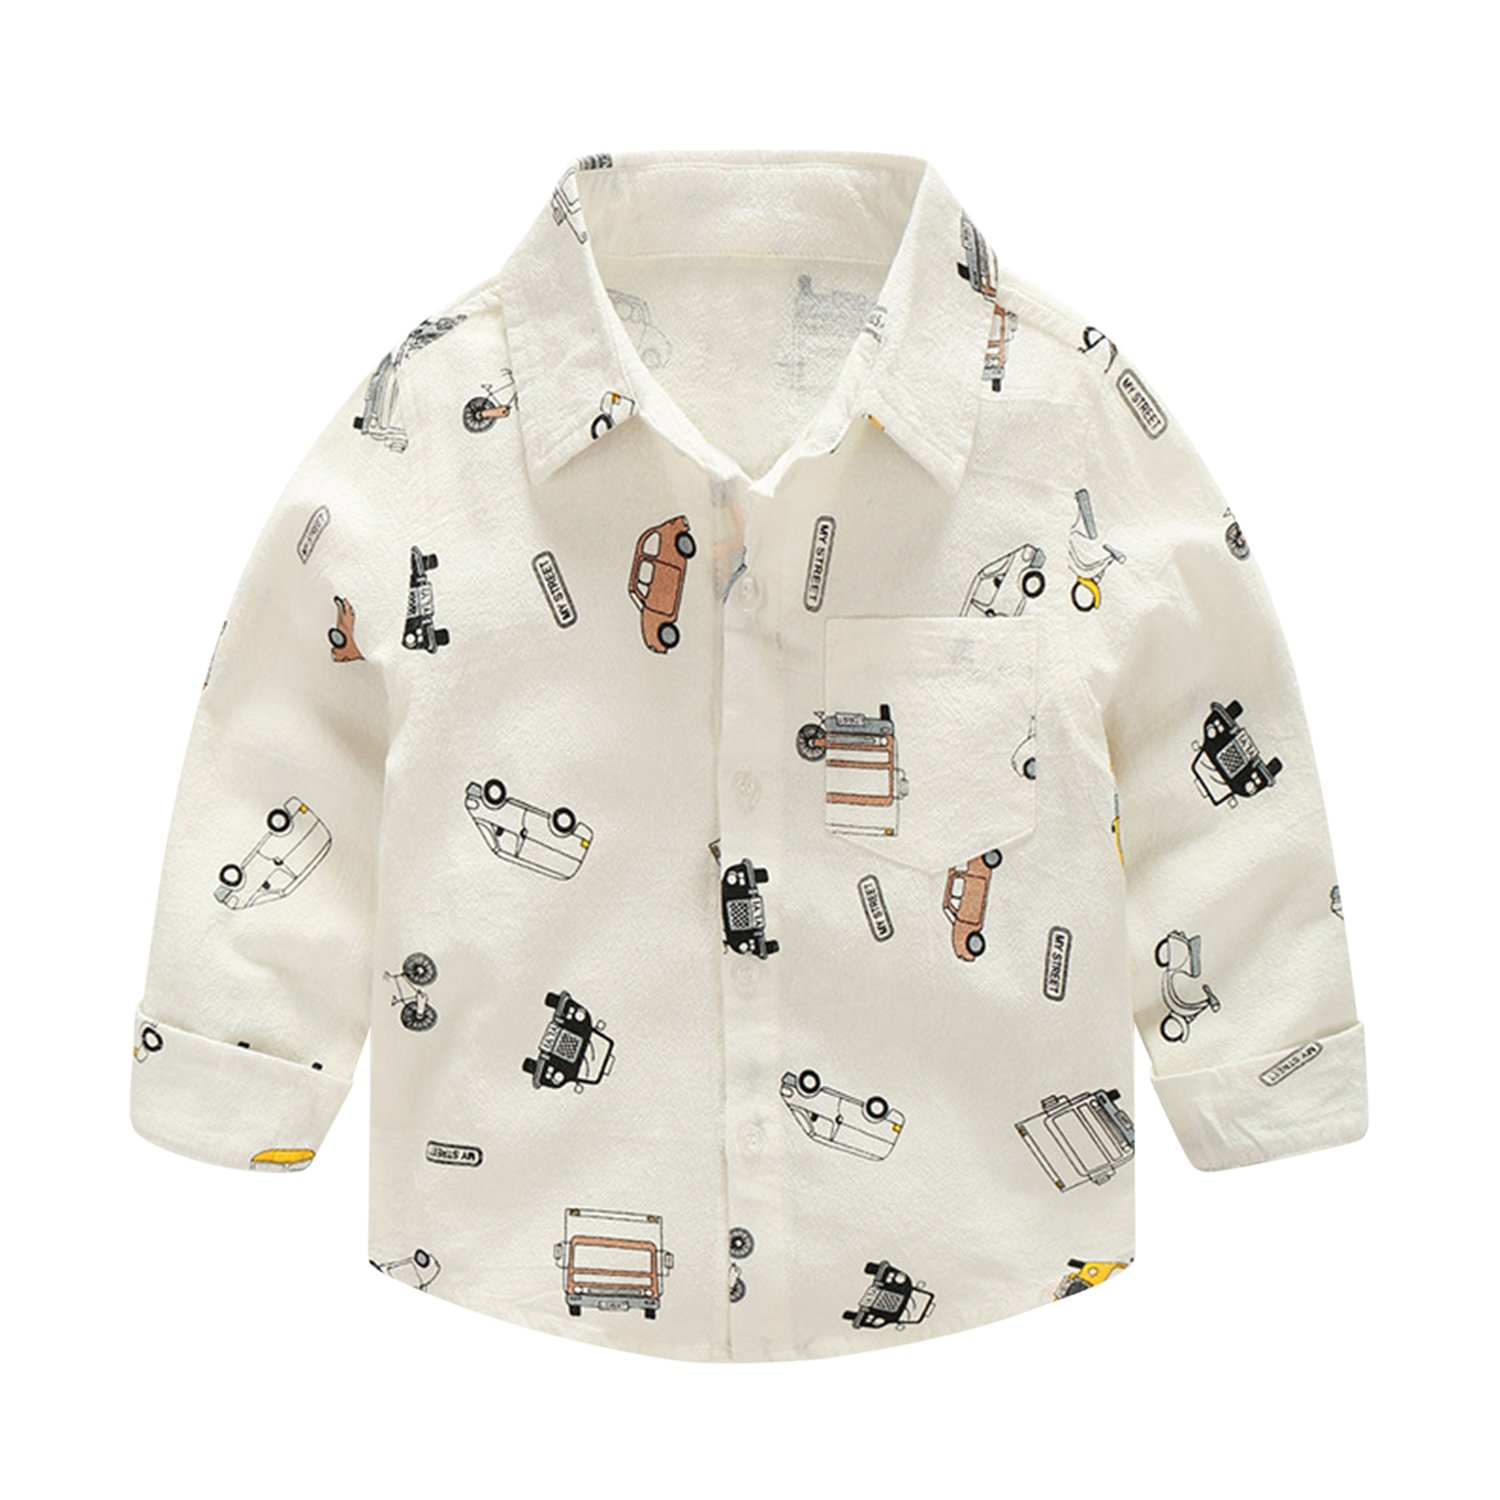 Evelin LEE Infant Toddler Baby Boys Kids Long Sleeve Cars Printed Button Up Wedding Birthday Woven Shirts 05LFA0694-zl